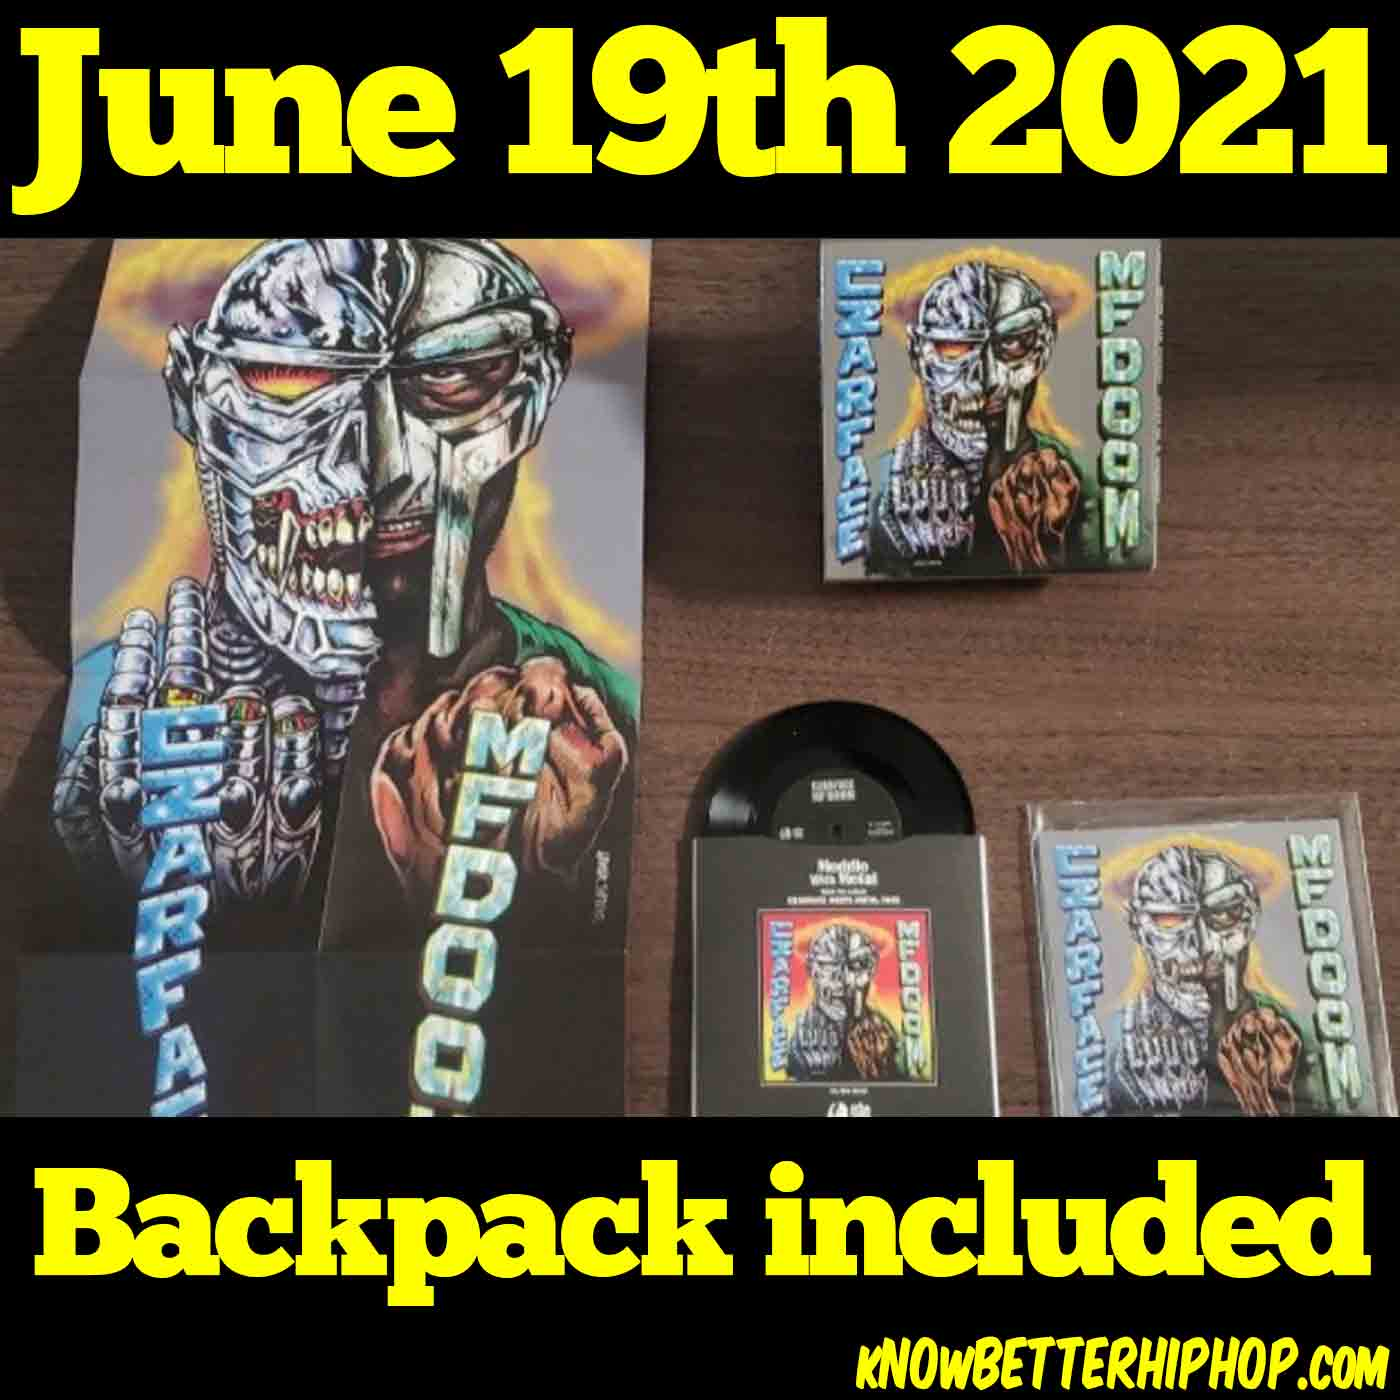 6-19-21 OUR show Backpack included